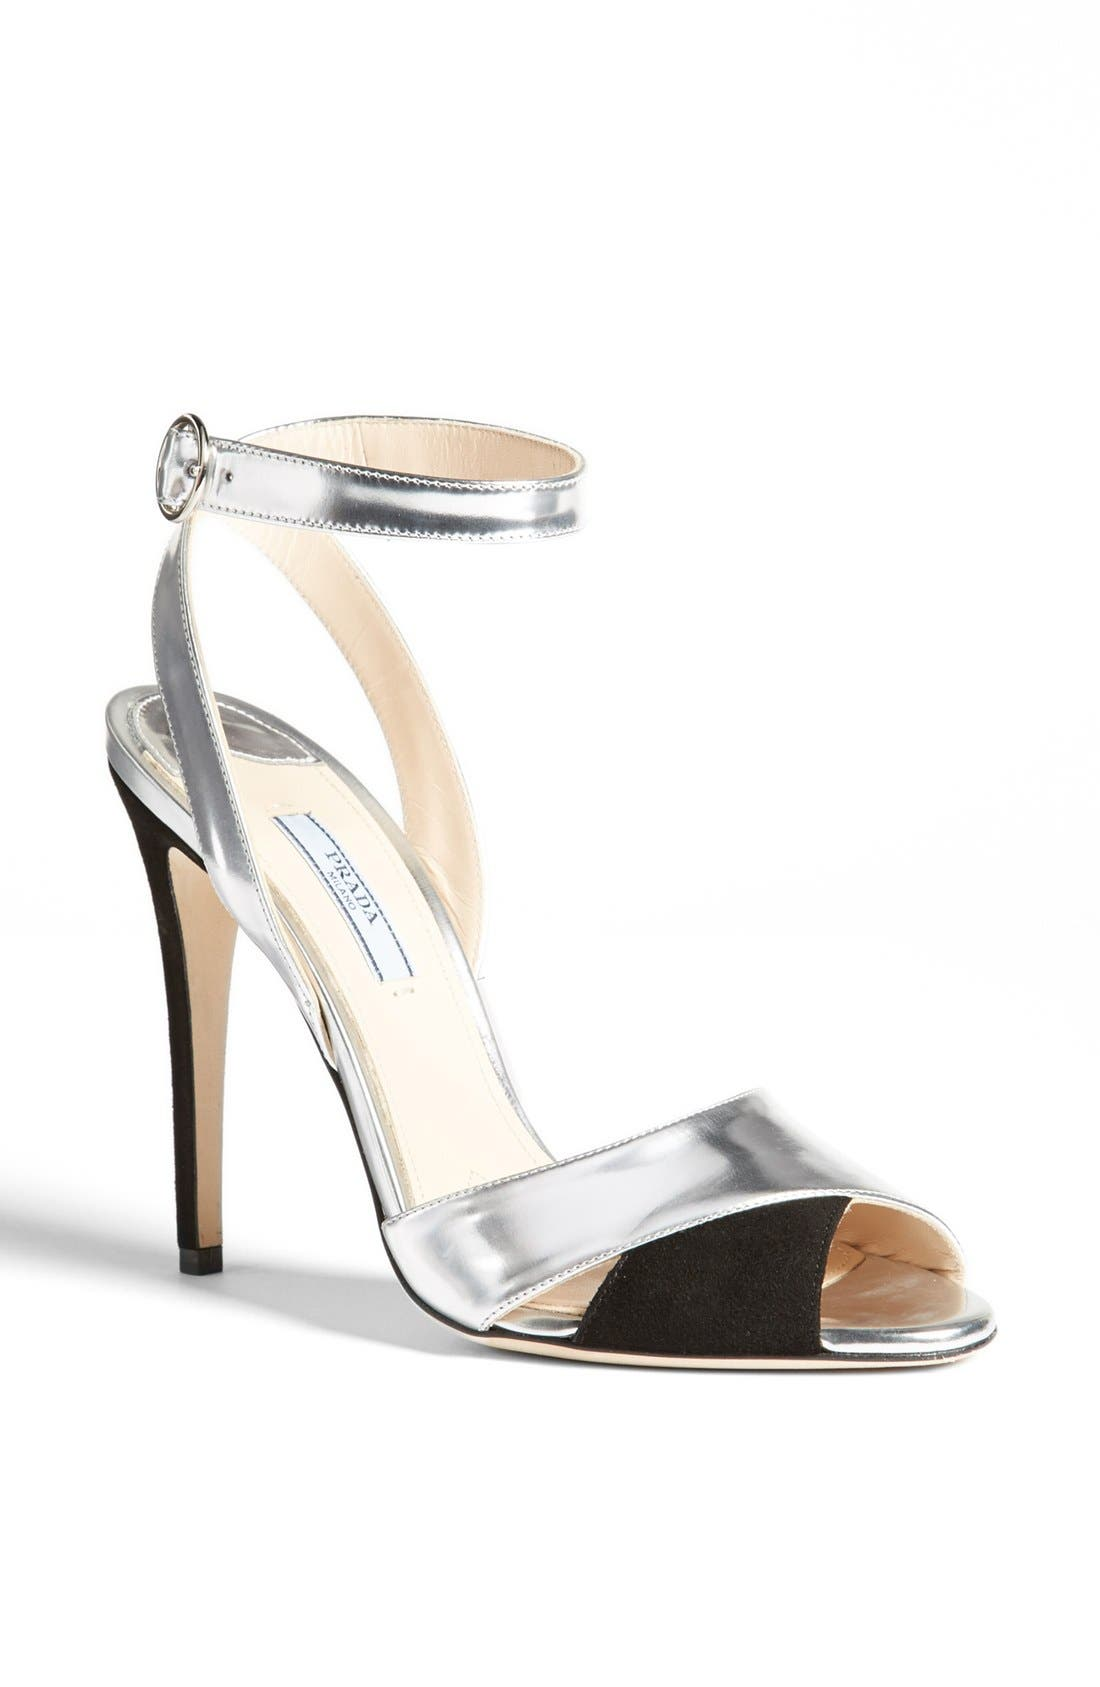 Alternate Image 1 Selected - Prada Bicolor Metallic Ankle Strap Sandal